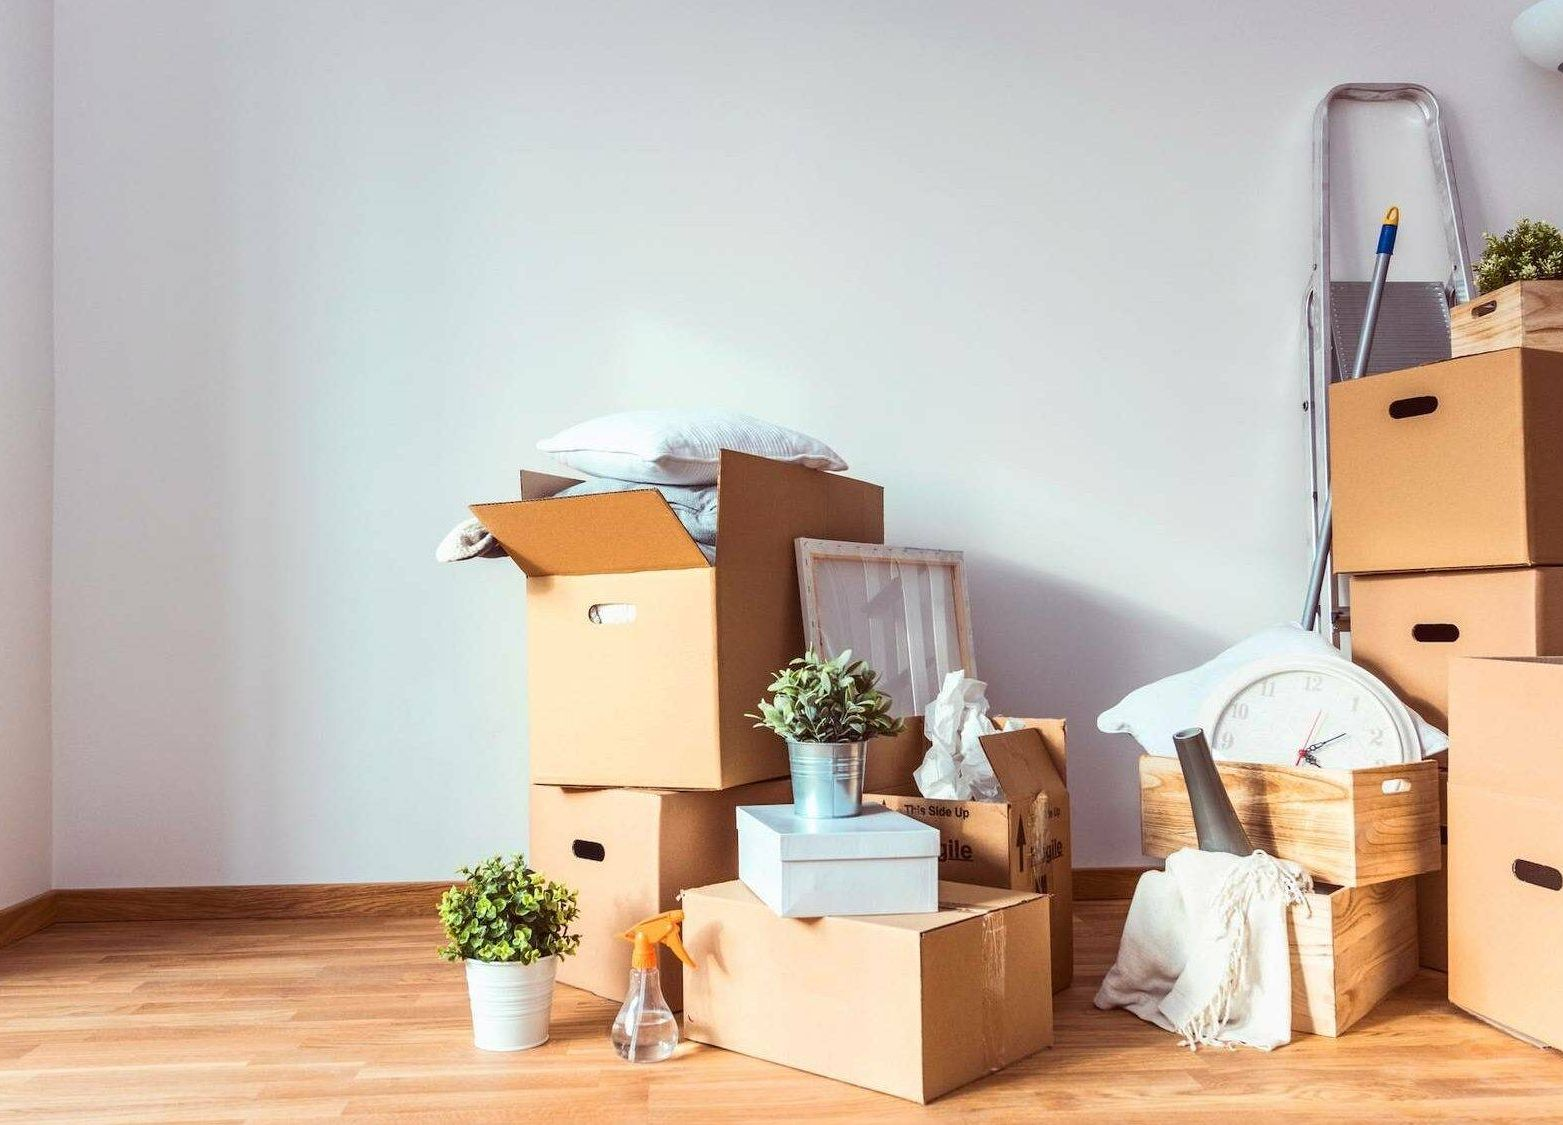 Photograph of moving boxes, household items, and cleaning supplies on the wooden floor of an apartment. Moving, moved, Rewire, PBS